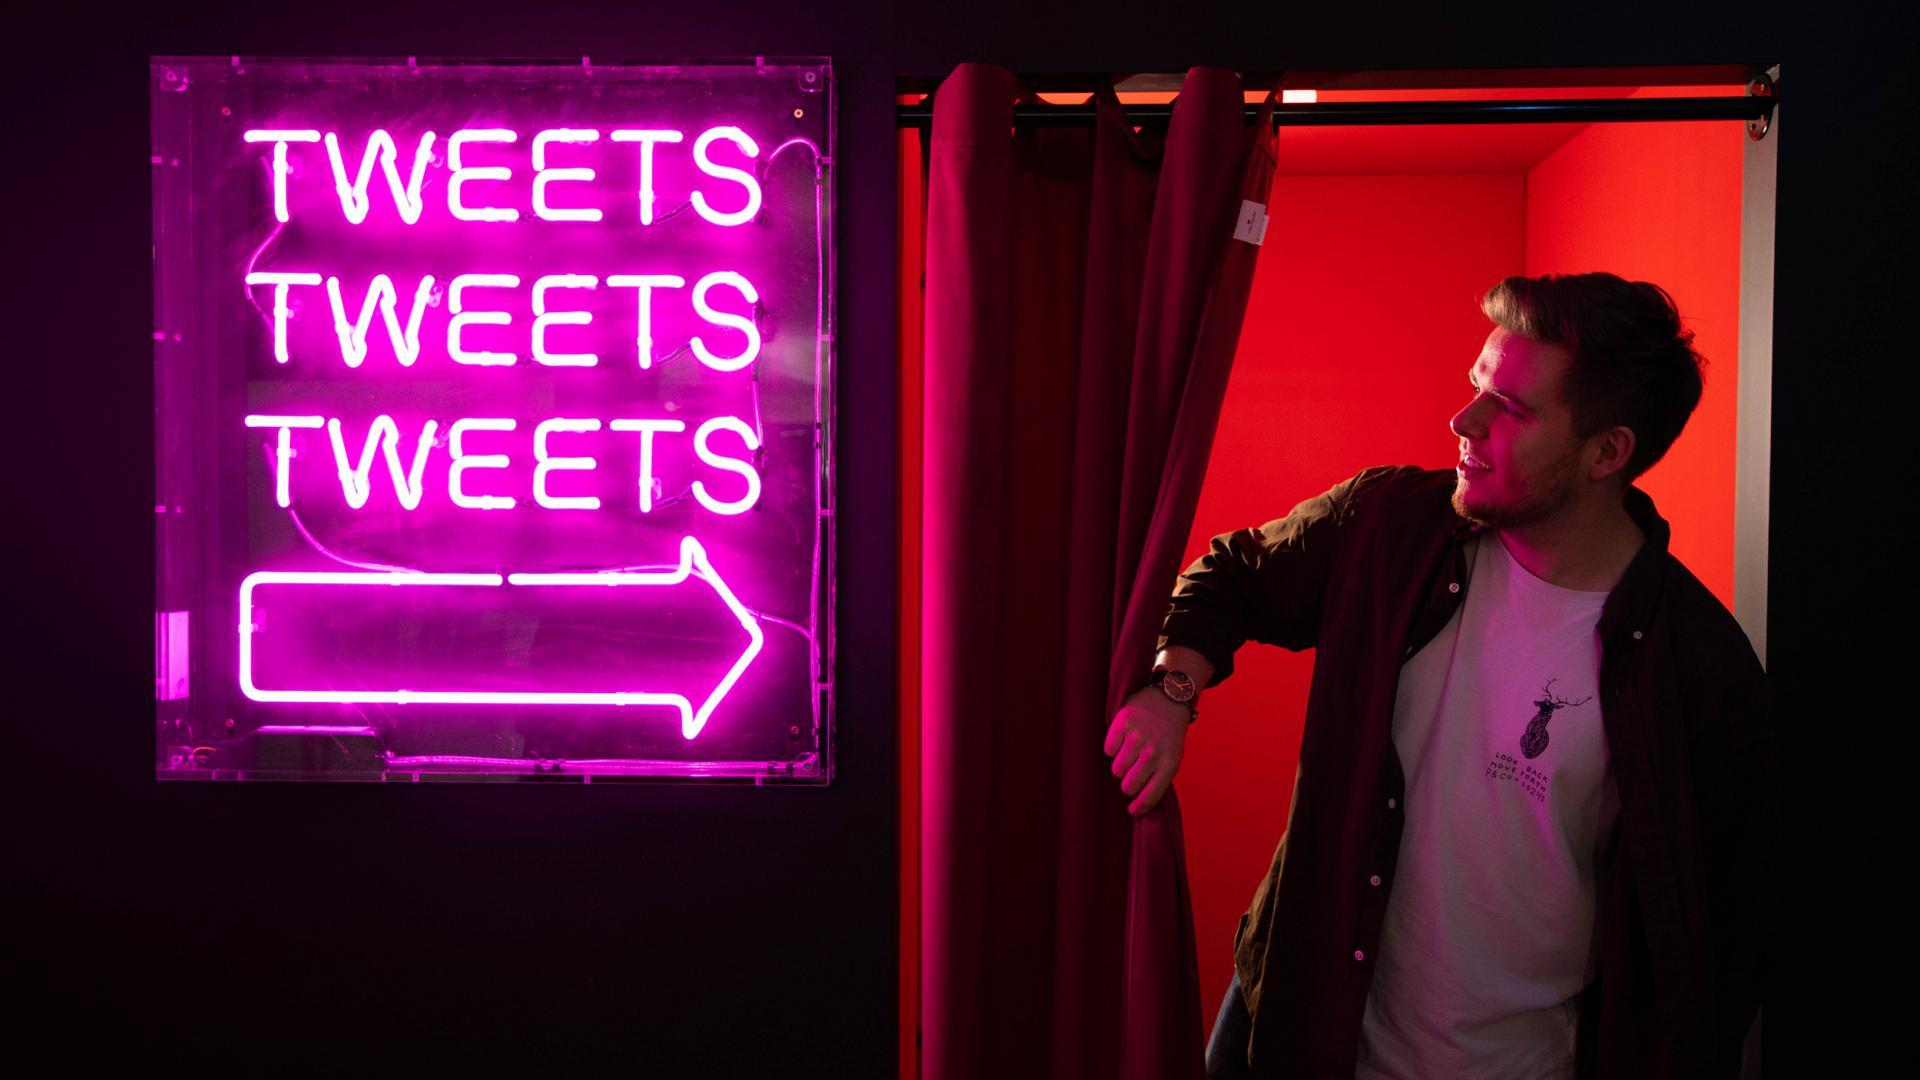 Neon sign saying Tweets Tweets Tweets